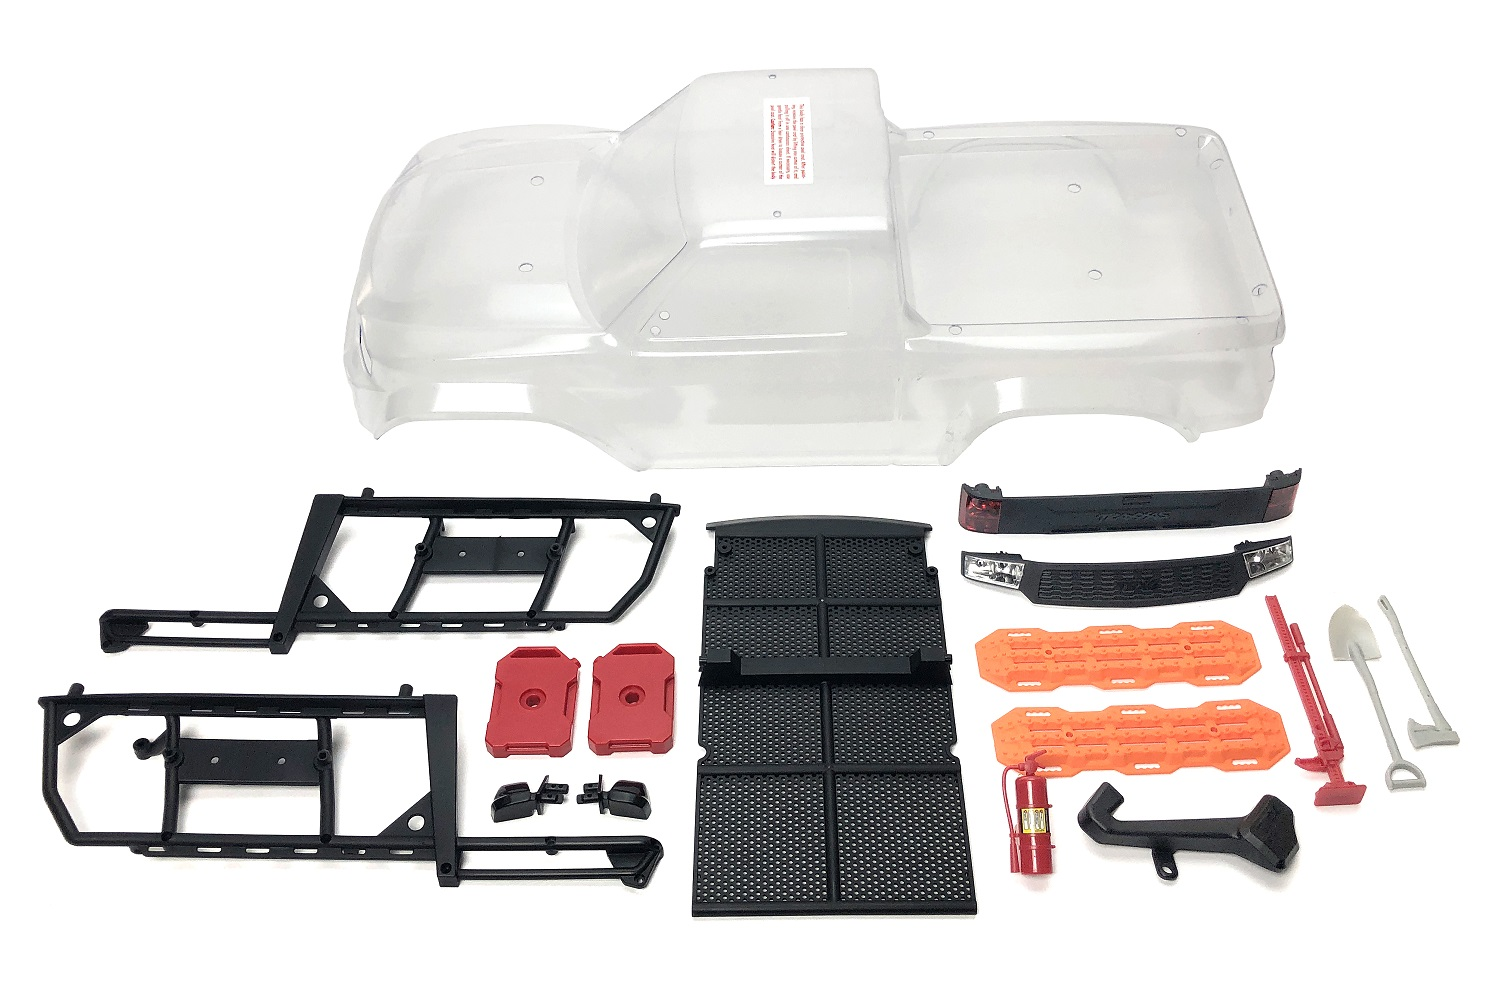 Sport body and accessories